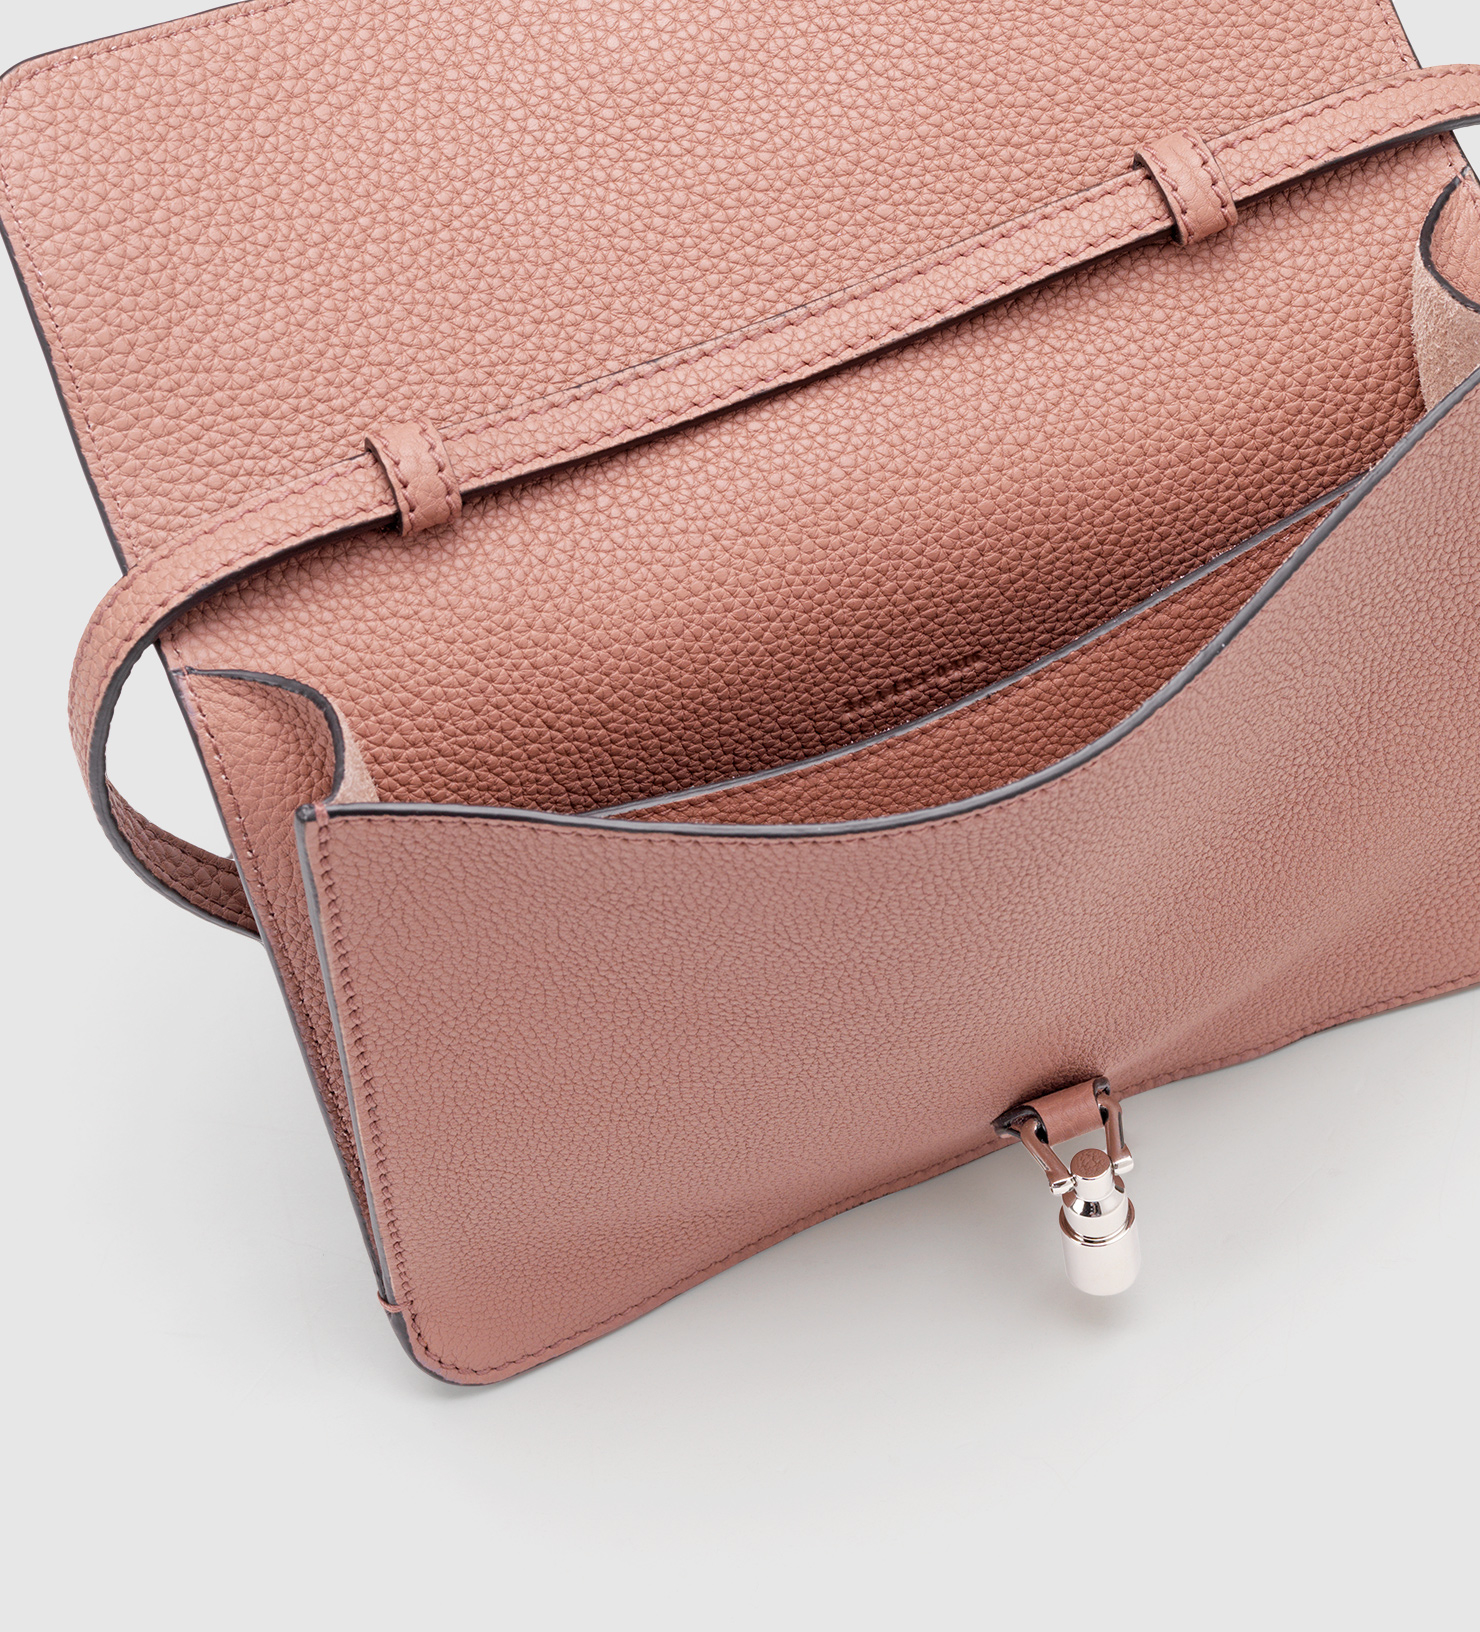 5d9f40cfd92 Lyst - Gucci Jackie Soft Leather Convertible Wallet in Pink